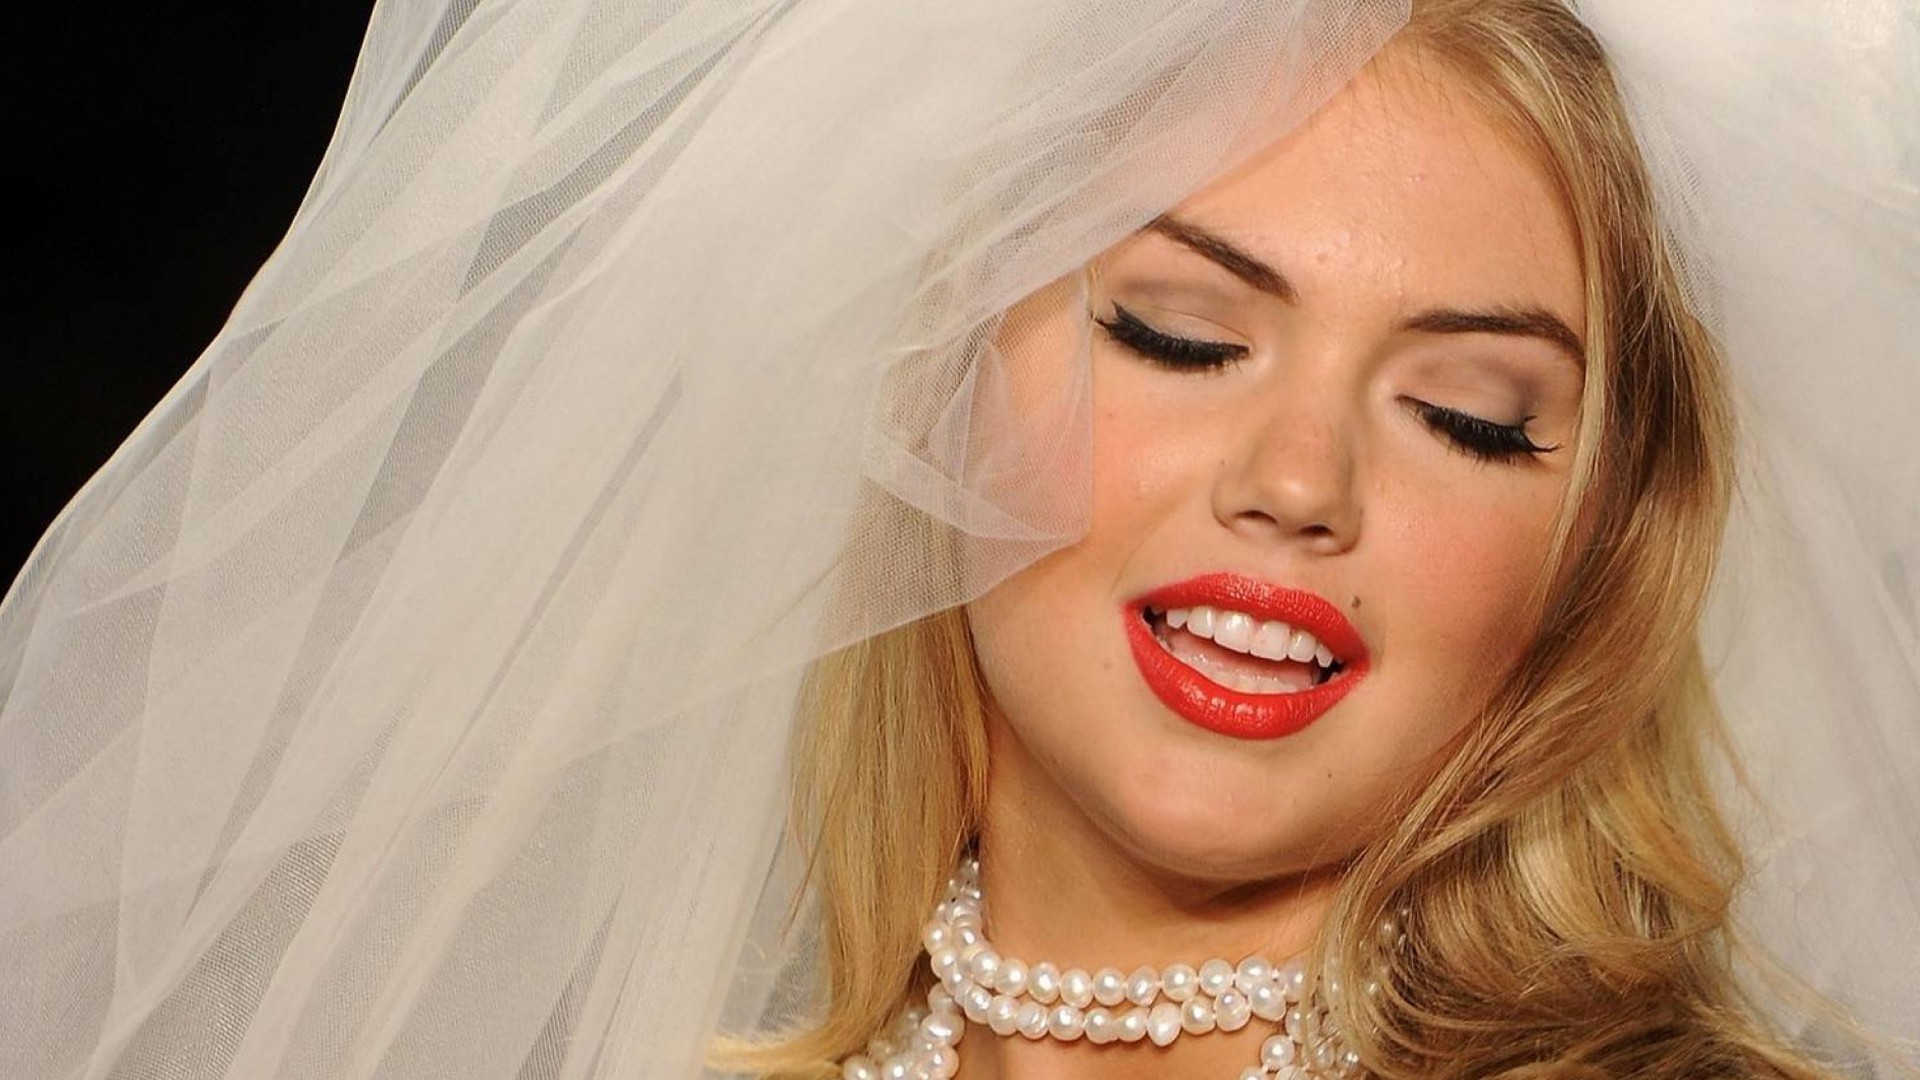 Kate Upton Wallpaper HD Widescreen For